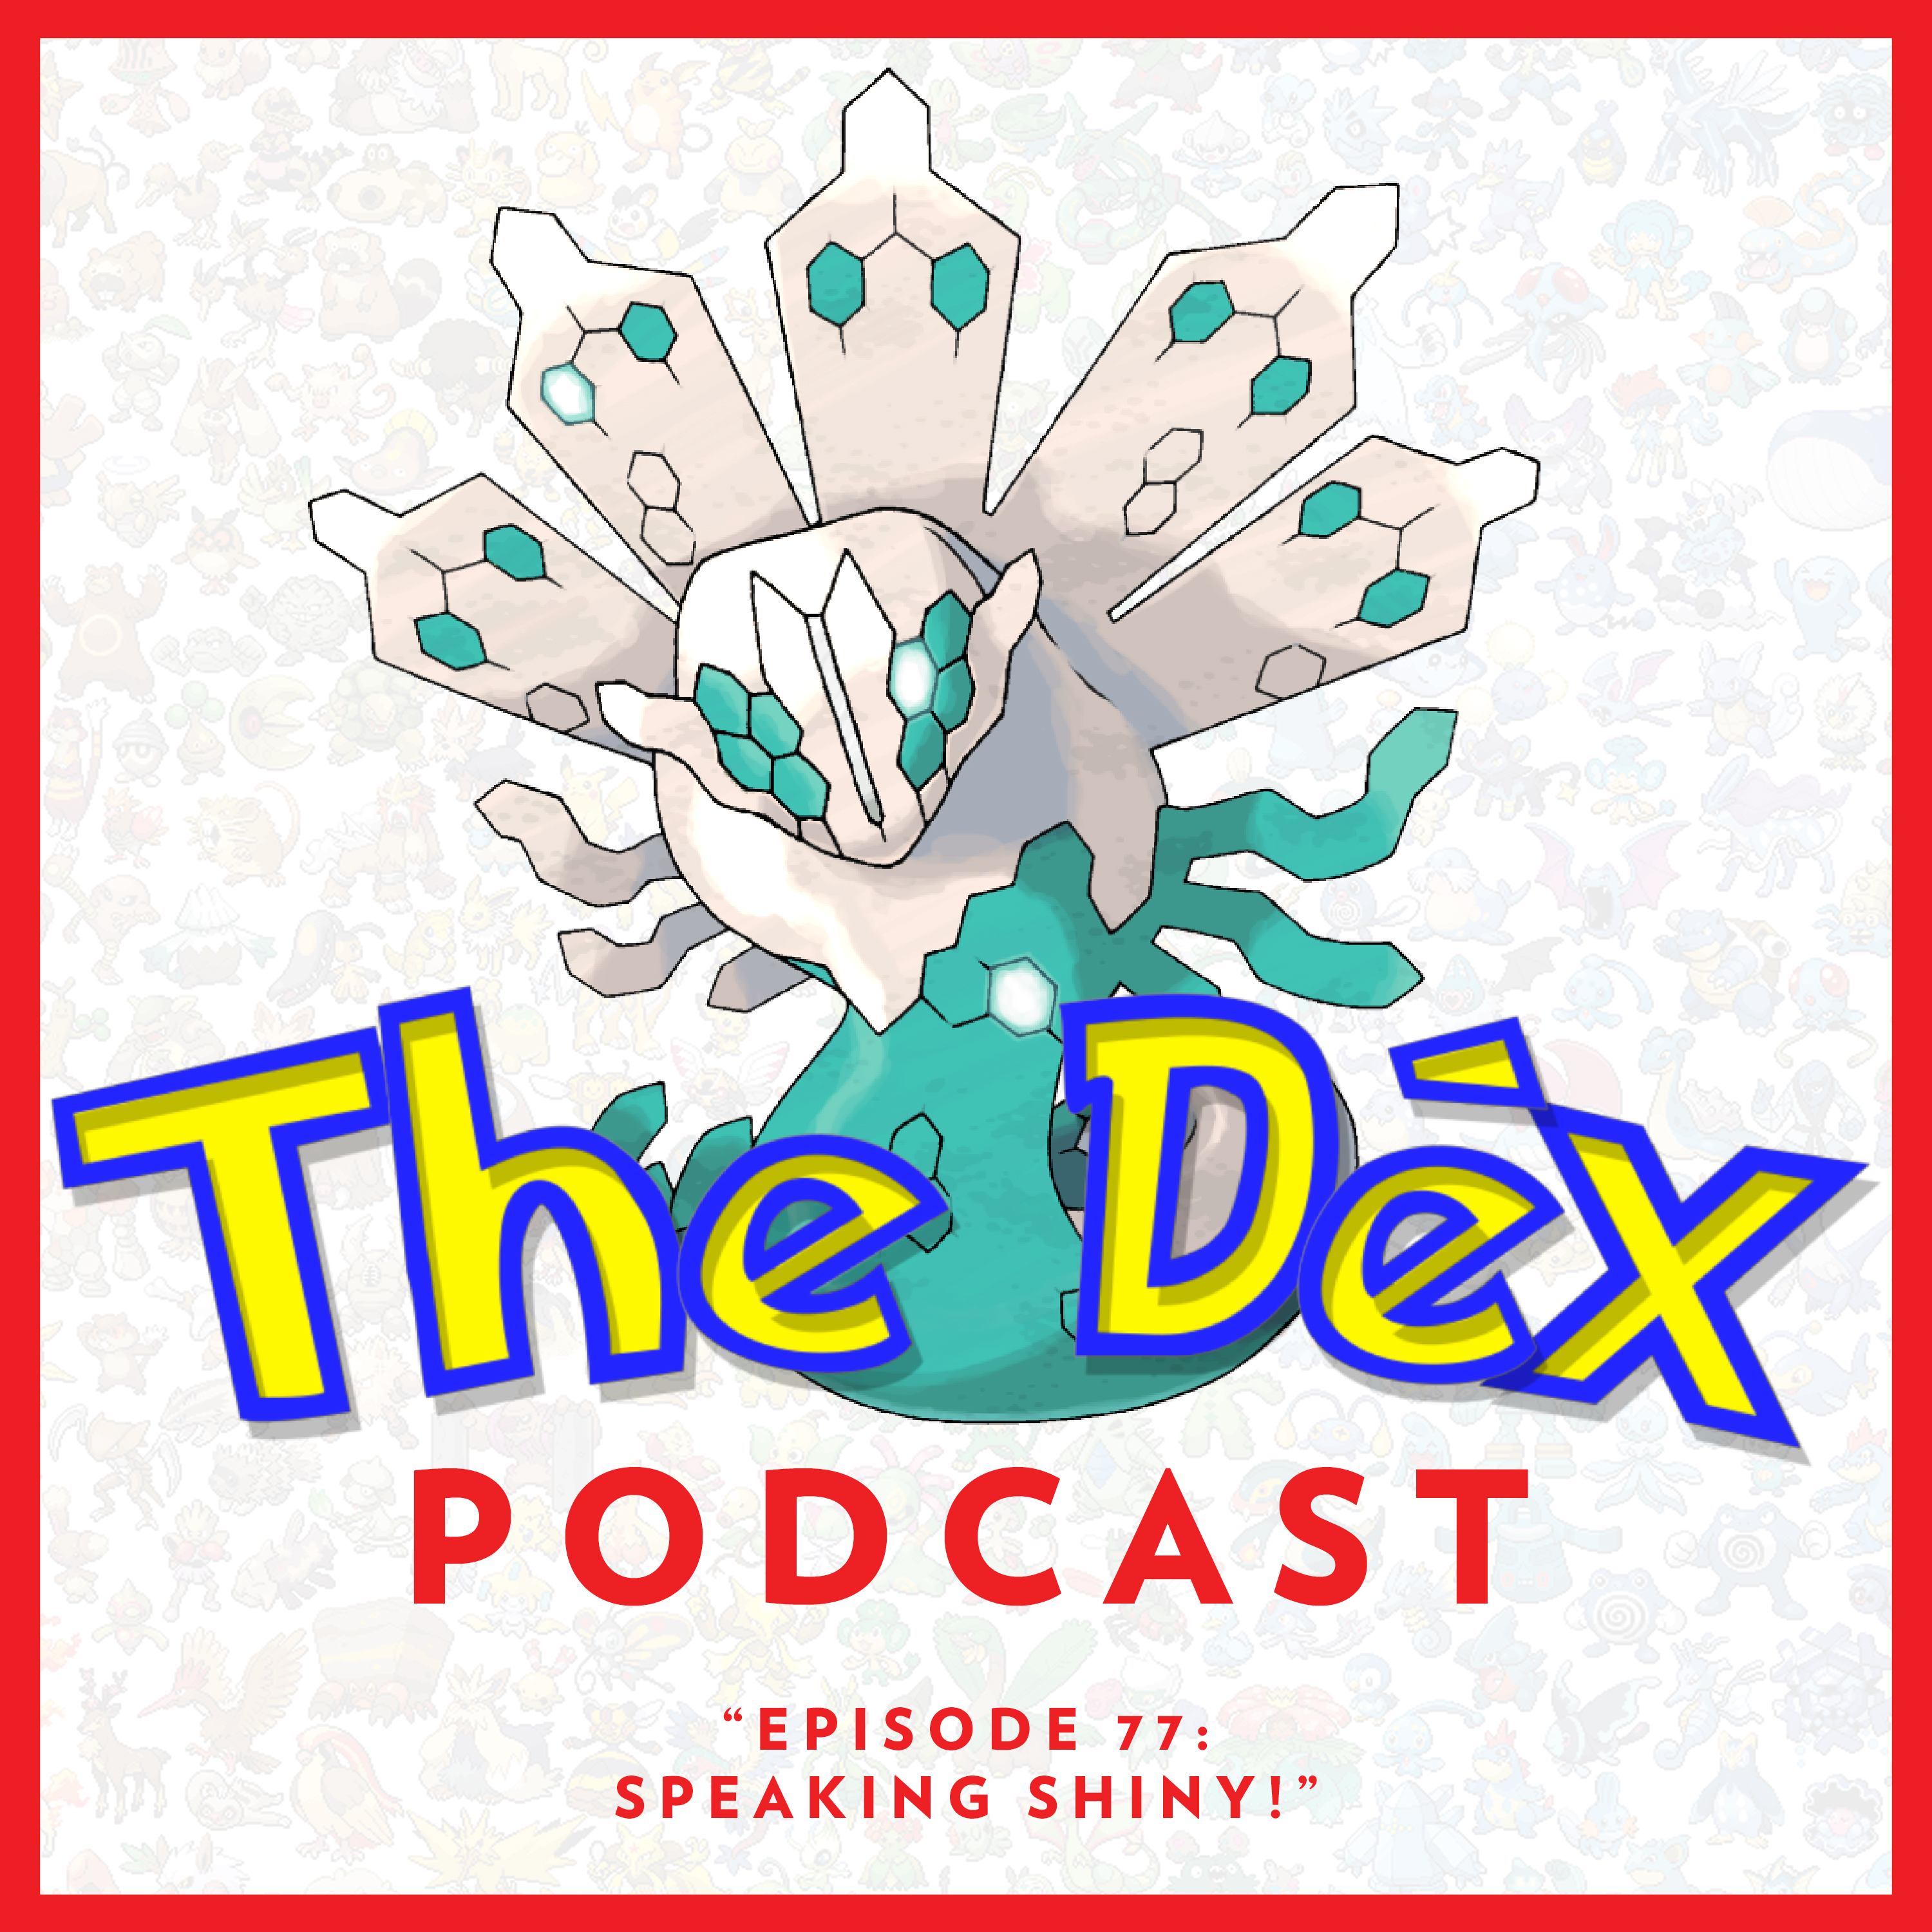 The Dex! Podcast #77: Speaking Shiny!